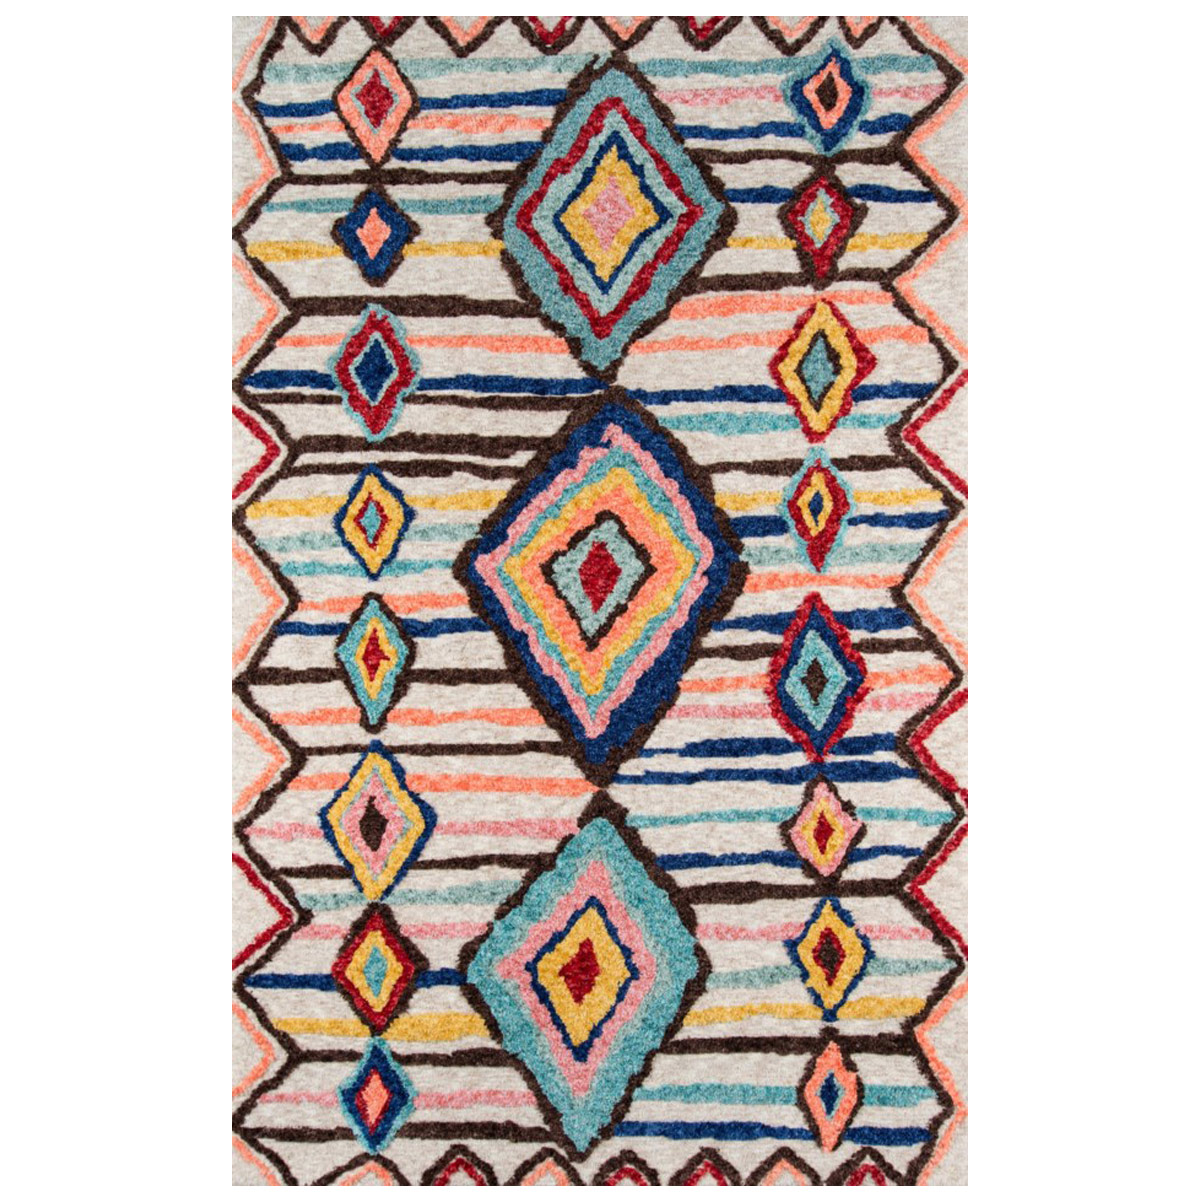 Arturo Colorful Rug - 2 x 8